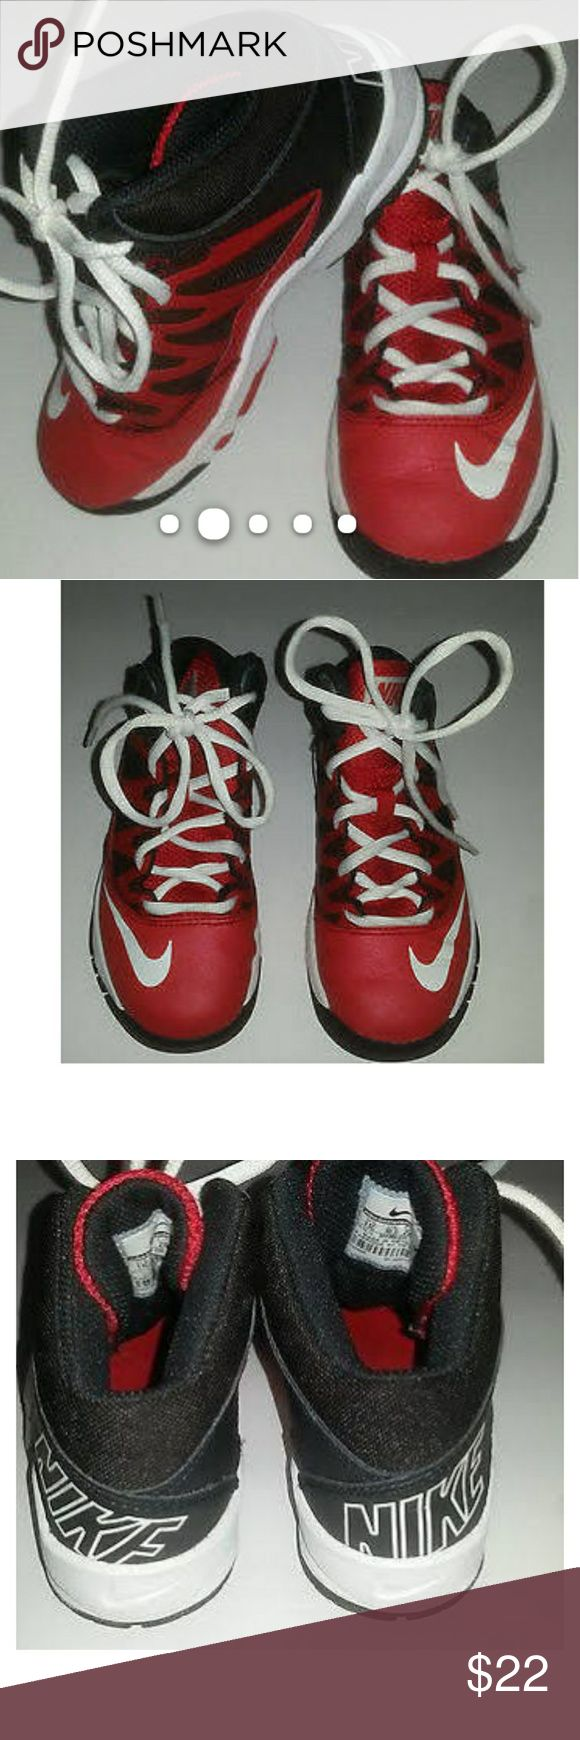 Nike Stutter Step hi-top little boys shoes The shoes have been worn but are in excellent condition. Nike Shoes Sneakers